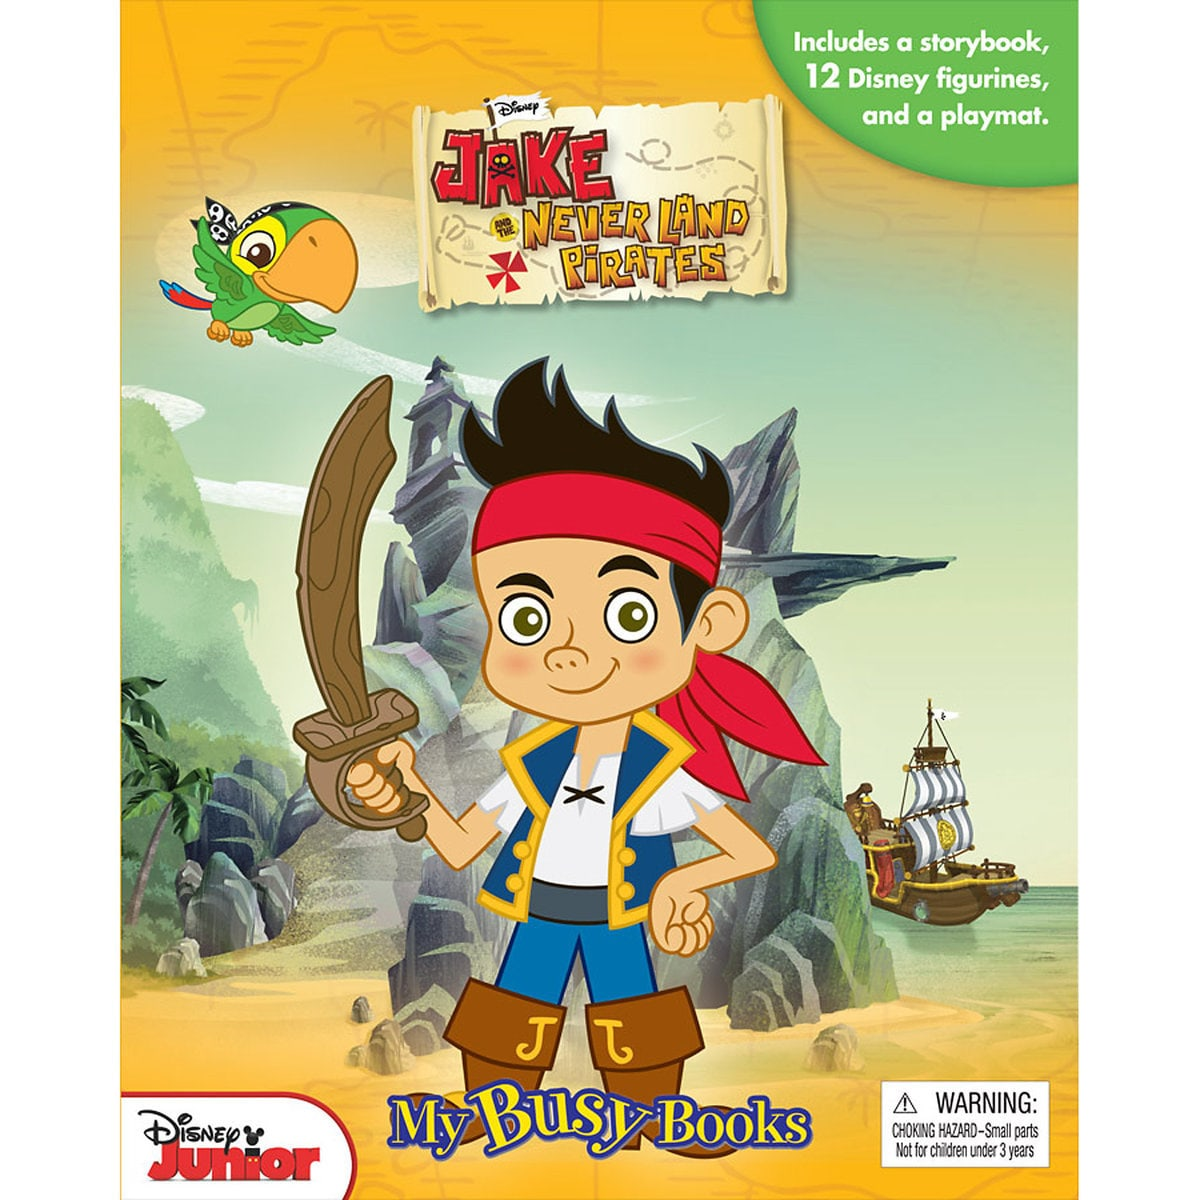 jake and the never land pirates my busy books shopdisney